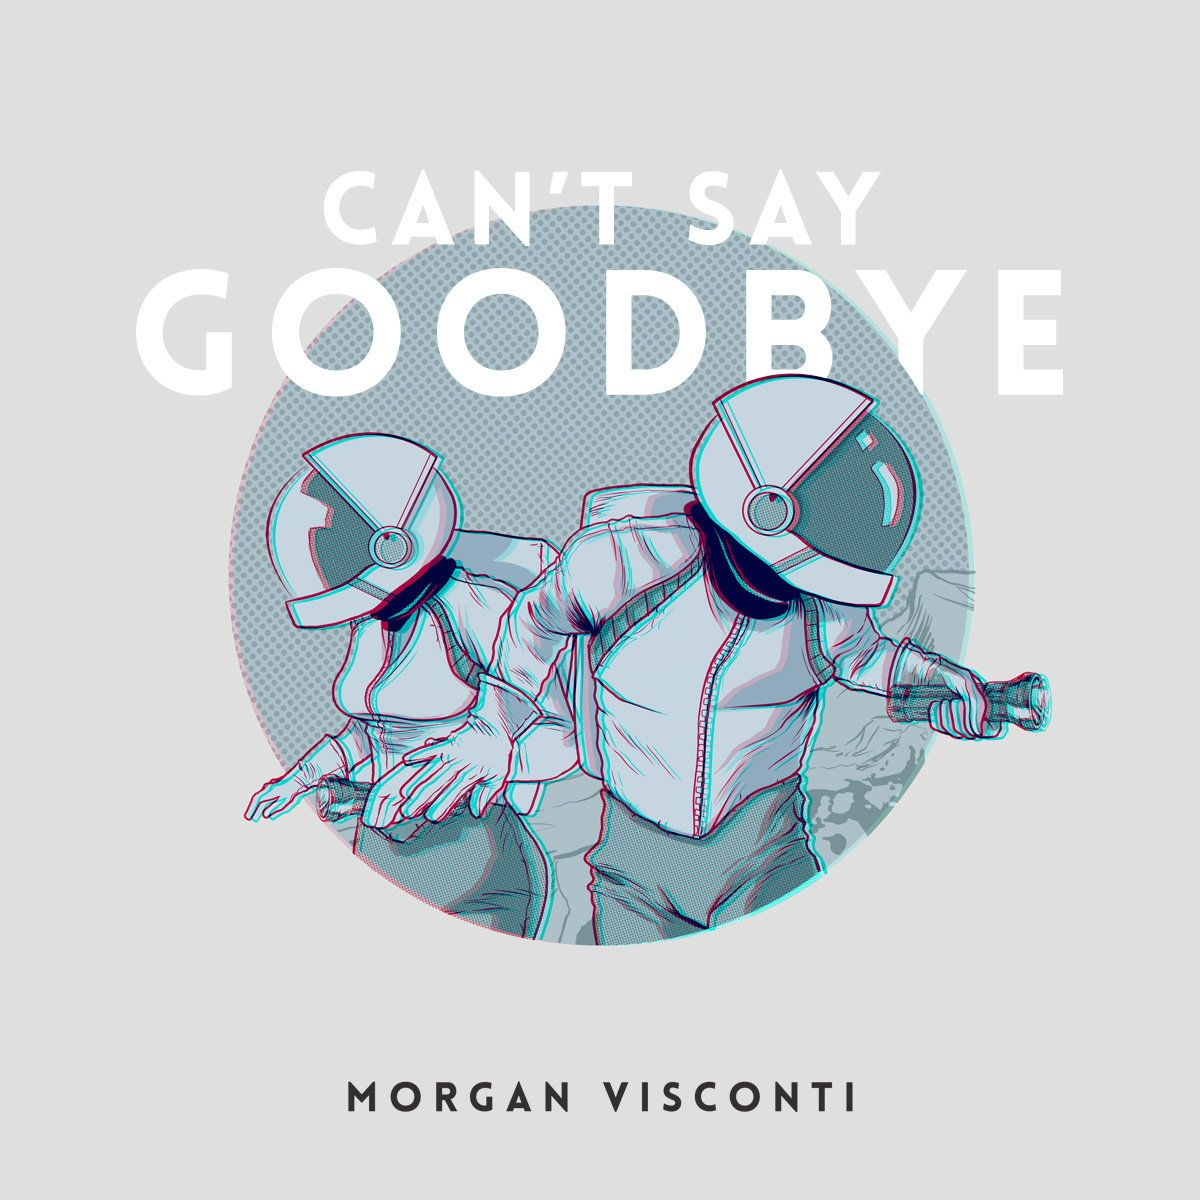 Morgan Visconti- remix of